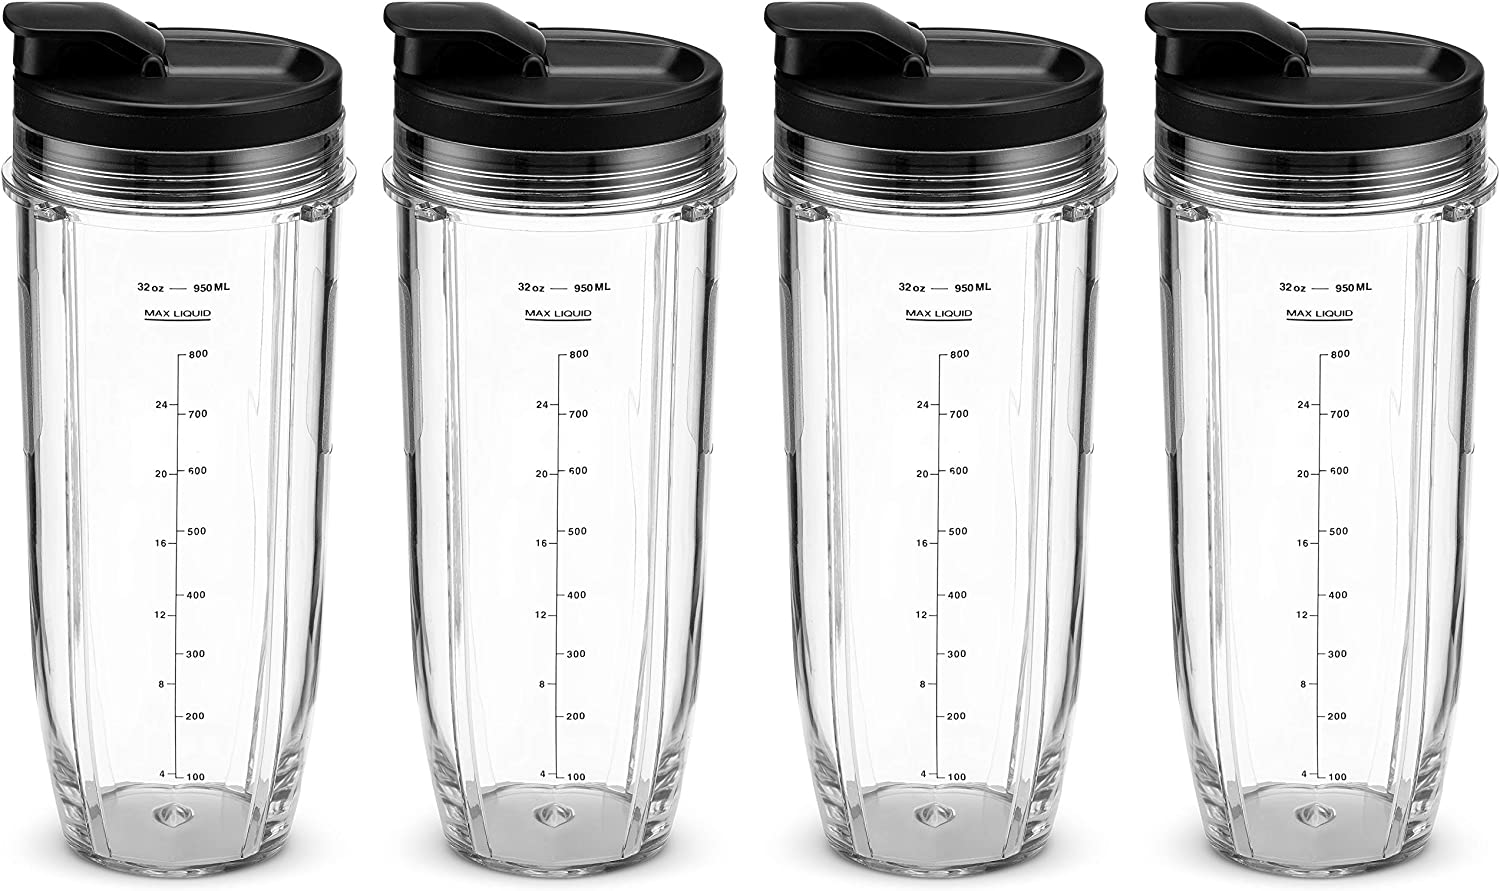 Nutri Ninja 32 oz Tritan Cups with Sip & Seal Lids. Compatible with BL480, BL490, BL640, BL680 Auto IQ Series Blenders (Pack of 4)